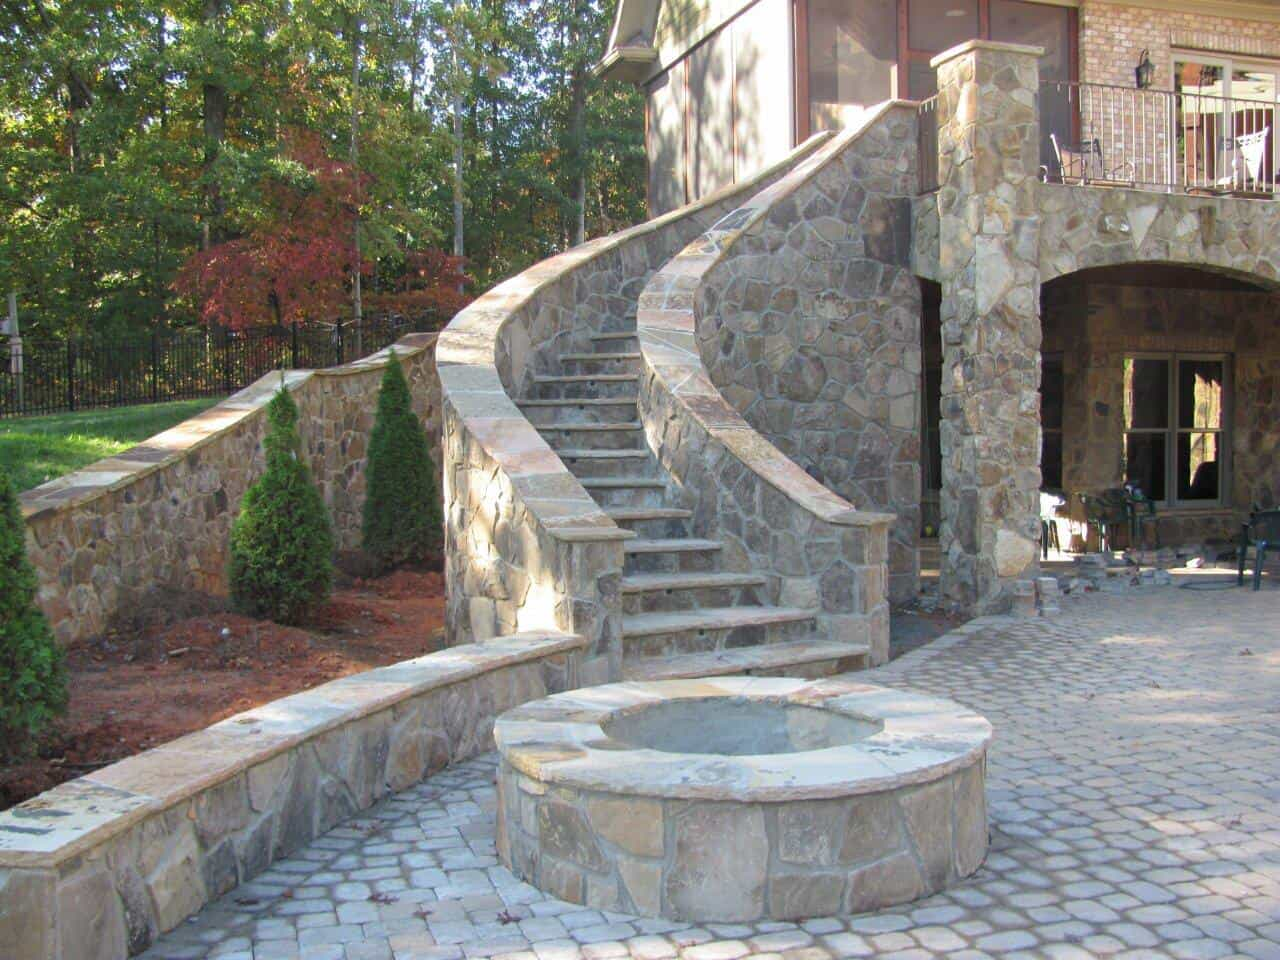 Hardscape Patio with Outdoor Fire Pit